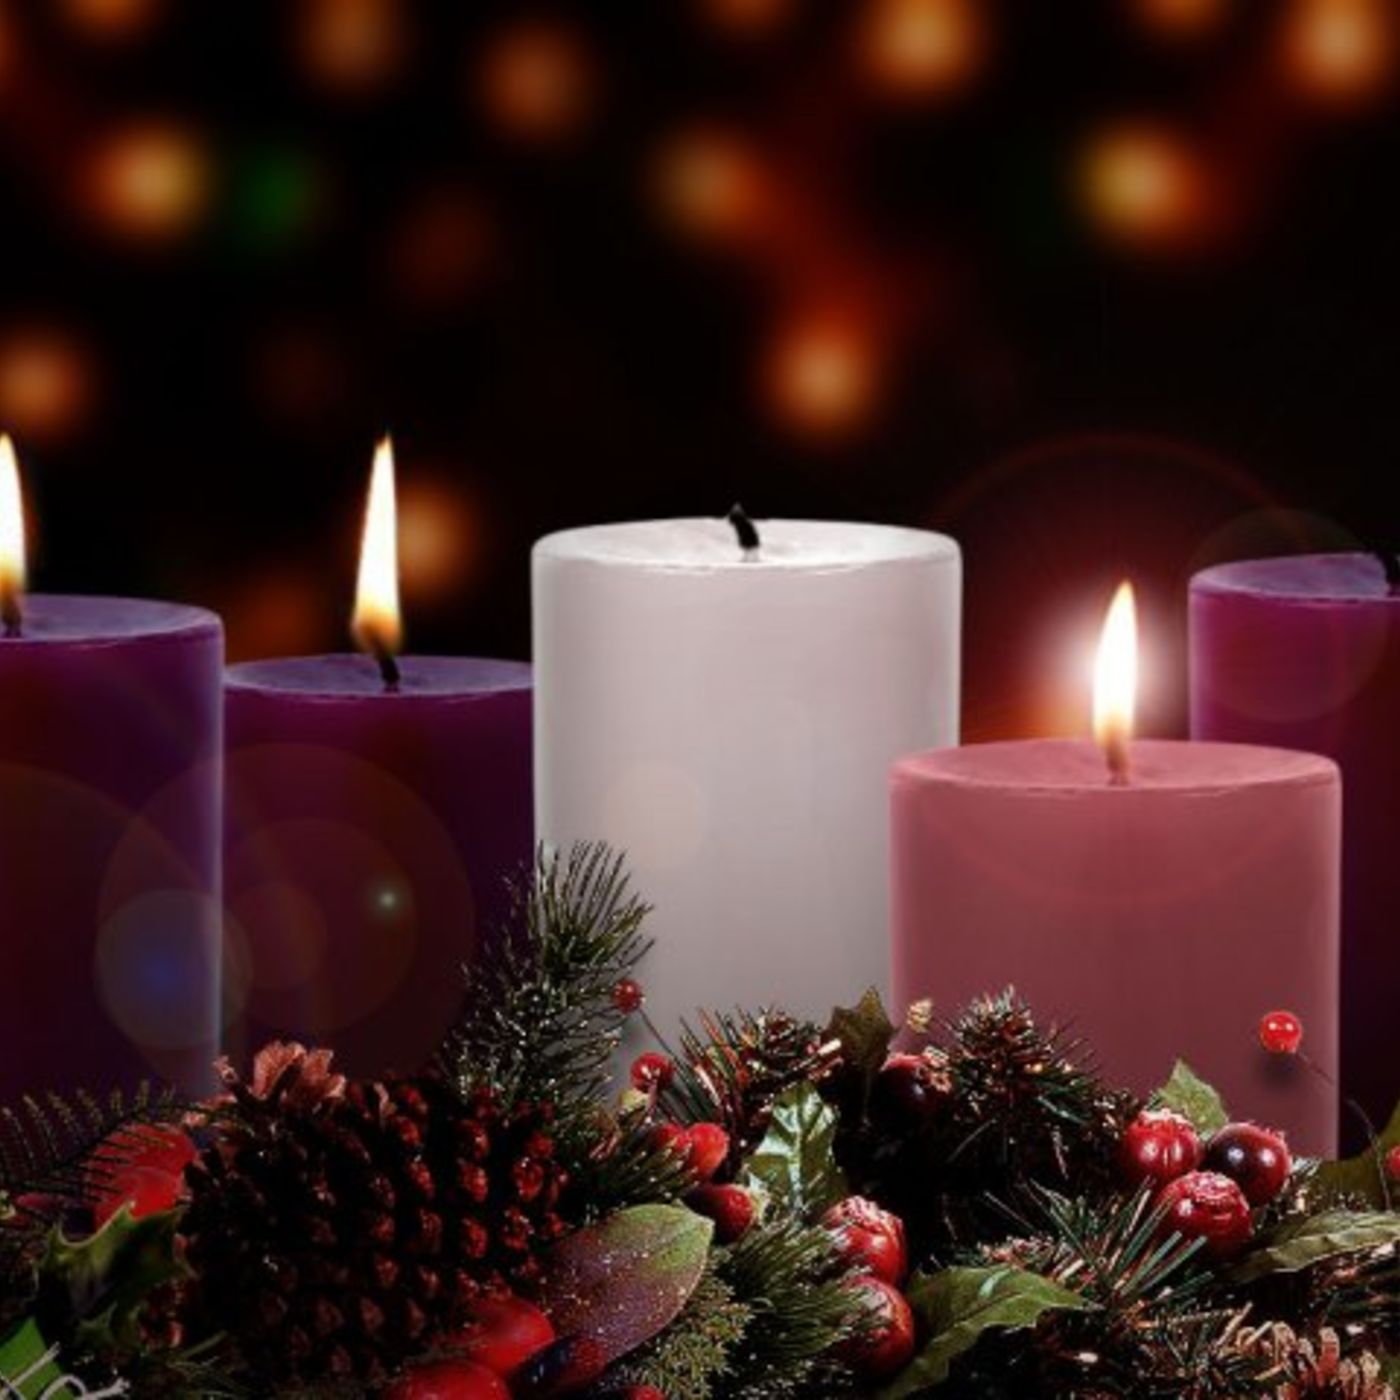 16th December 2018, The Third Sunday of Advent